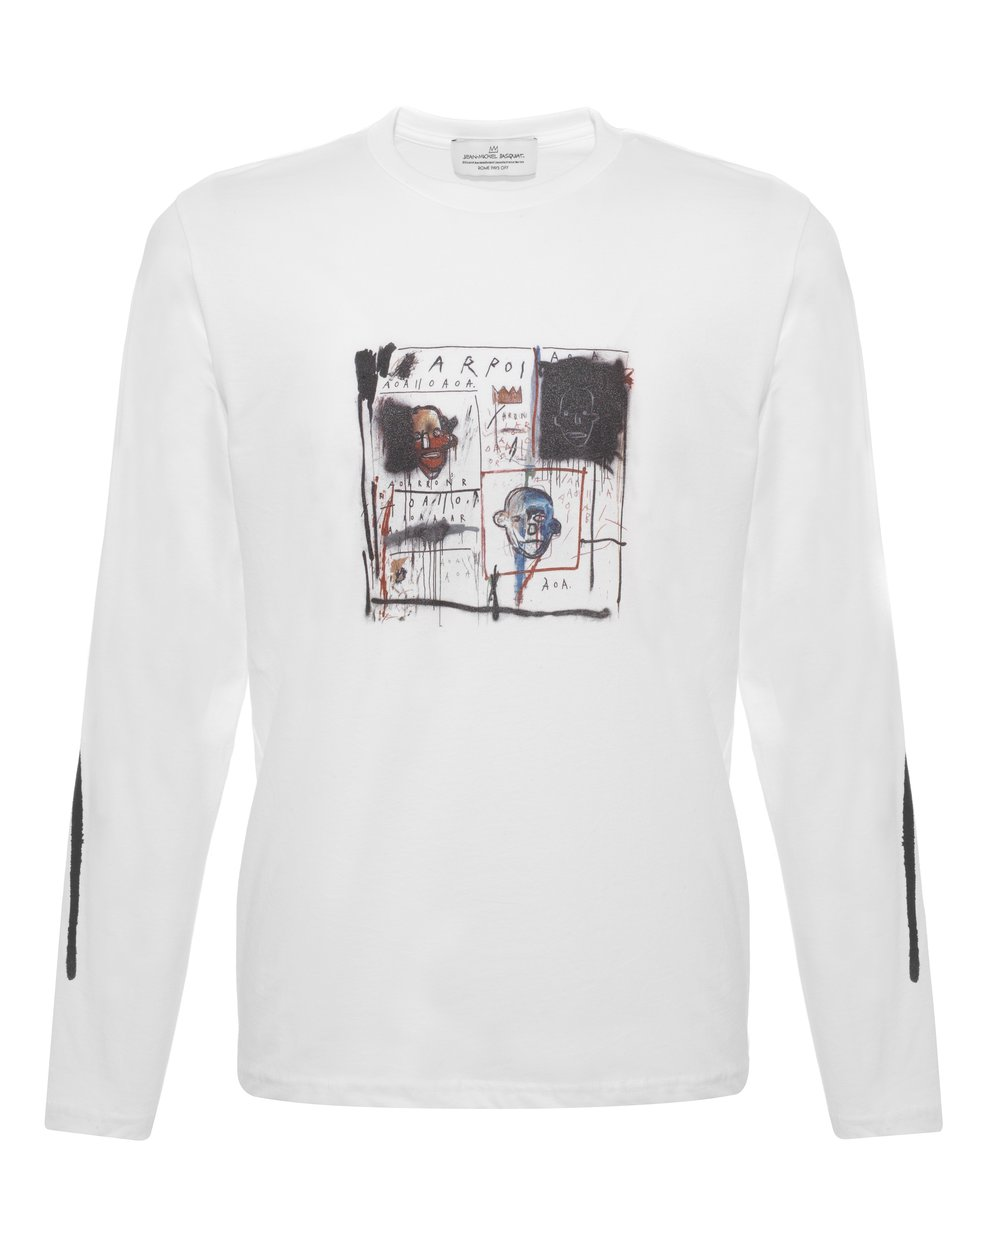 BASQUIAT - 1981 LONG SLEEVS SWEATSHIRT - WHITE M - £100 - BROWNS FASHION.jpg